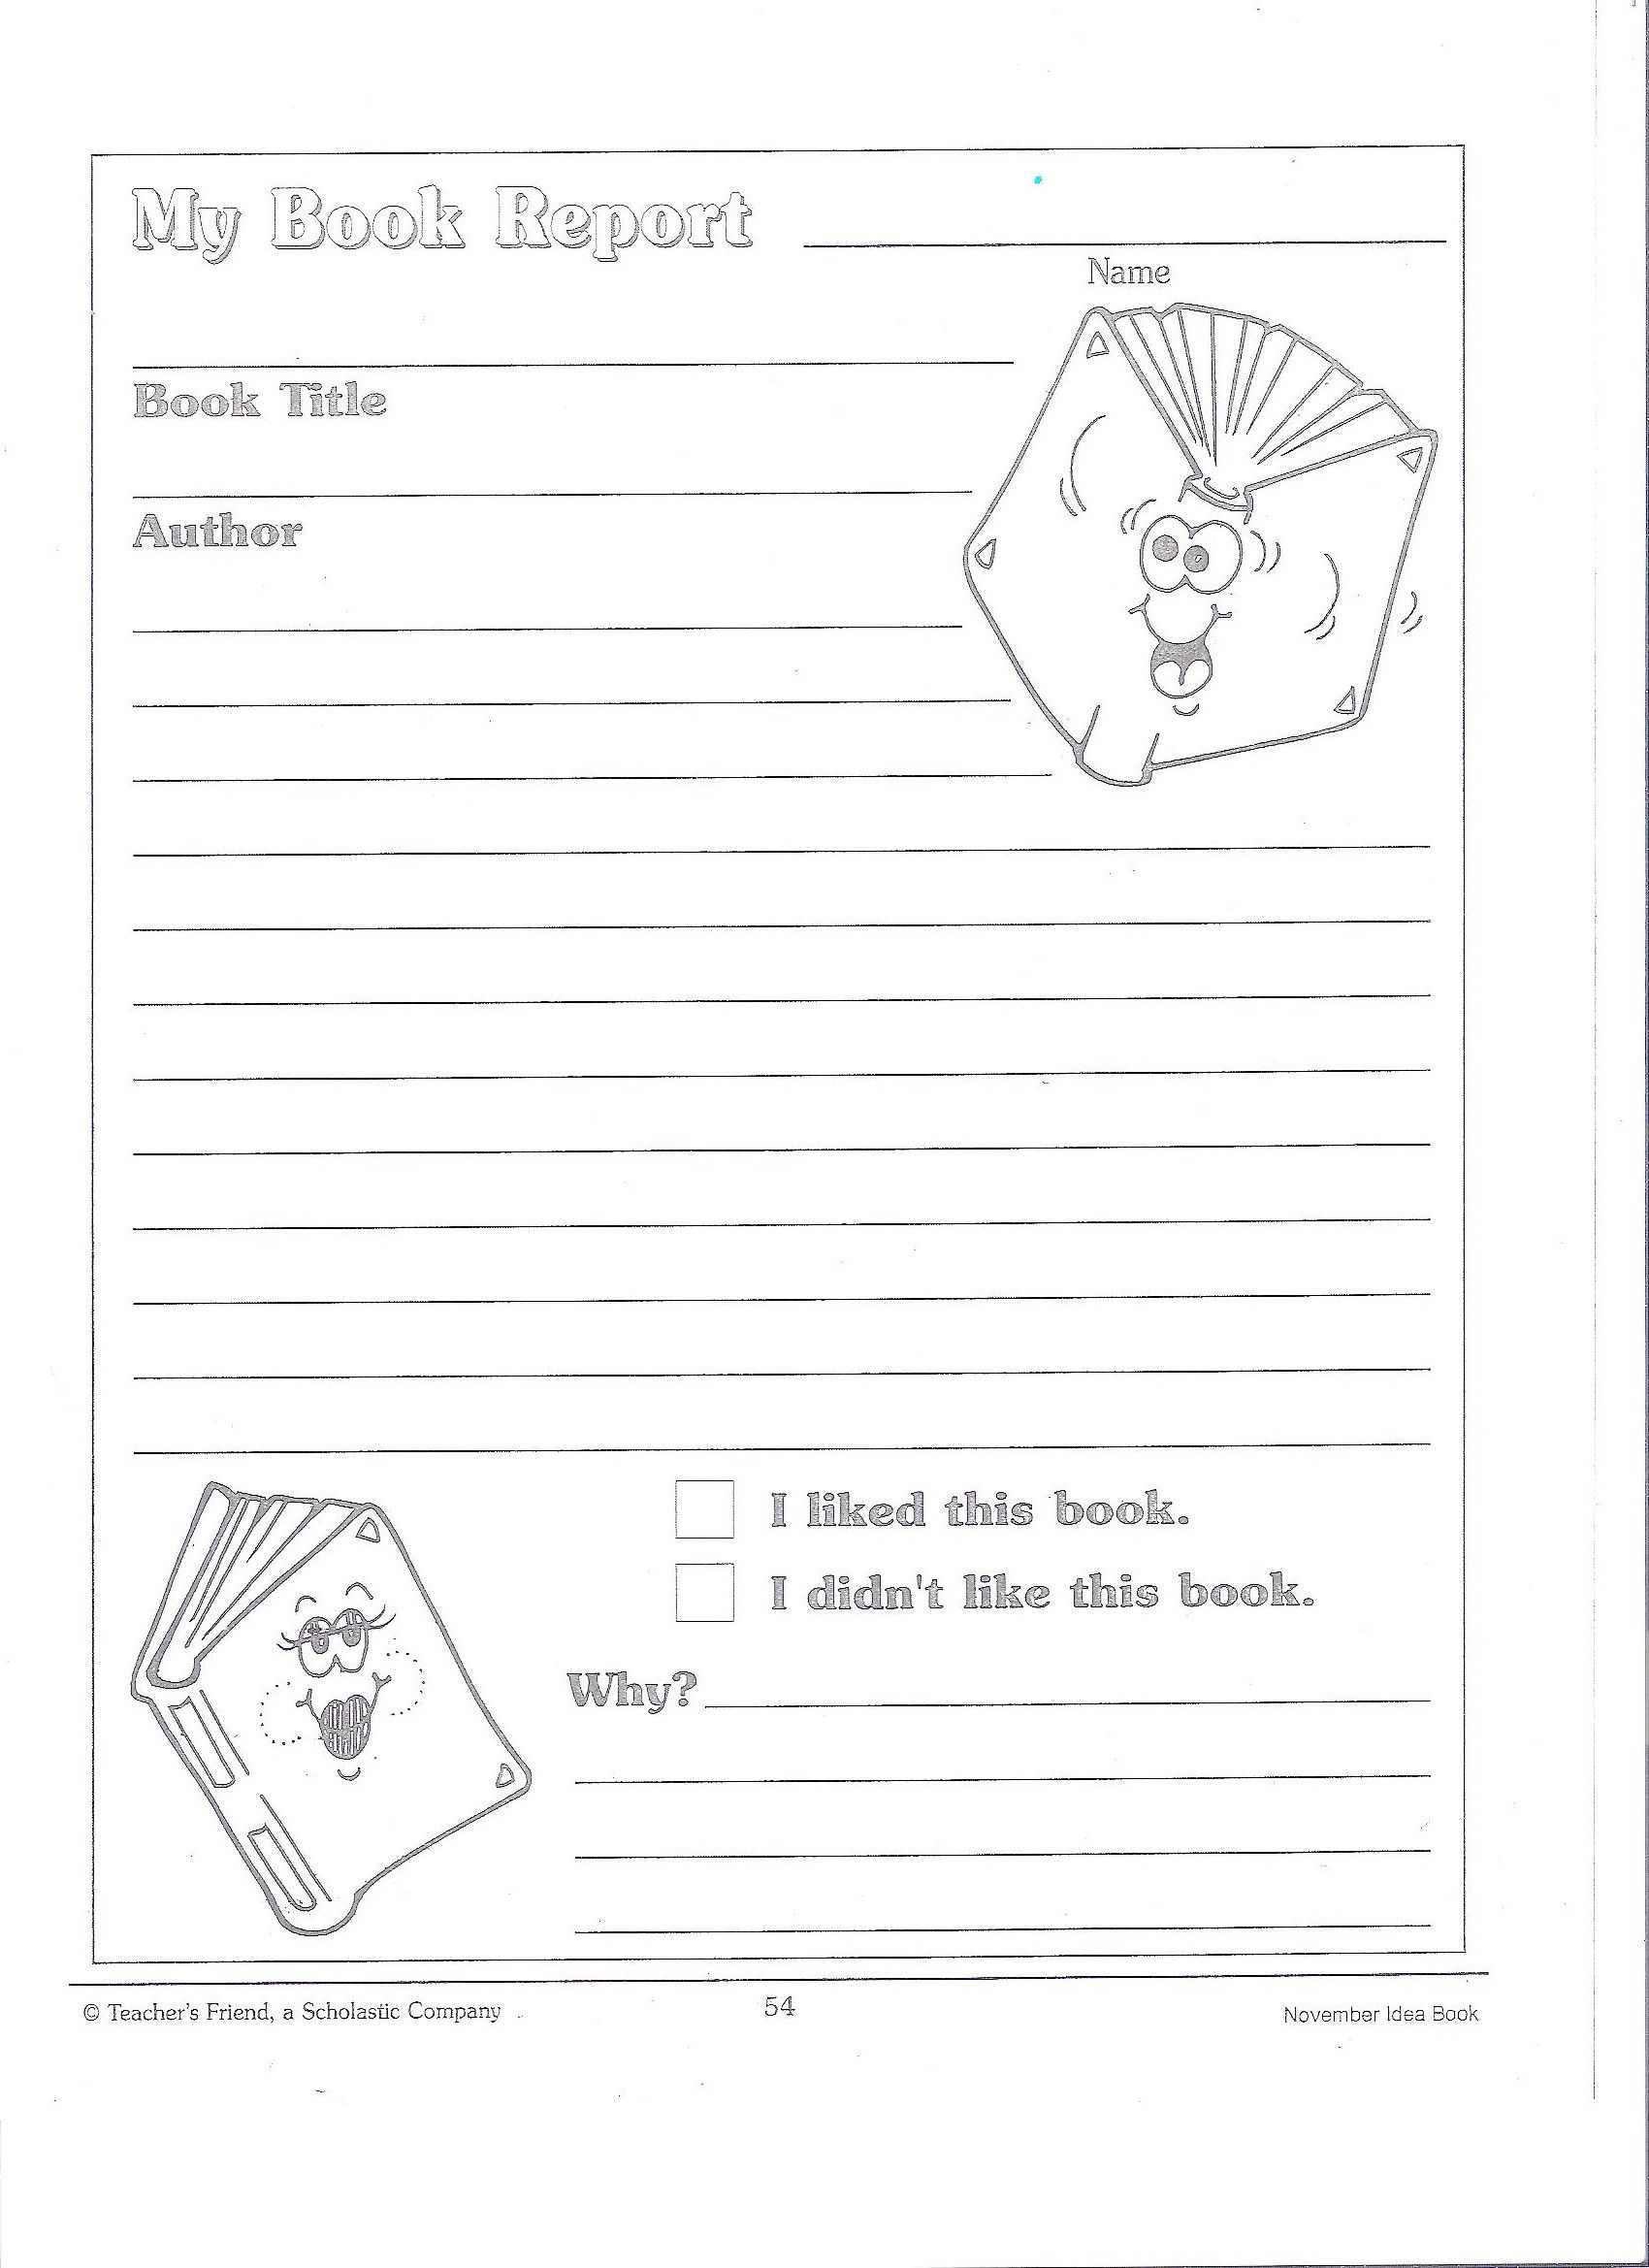 Printable Book Report Forms | Miss Murphy's 1St And 2Nd Pertaining To 1St Grade Book Report Template